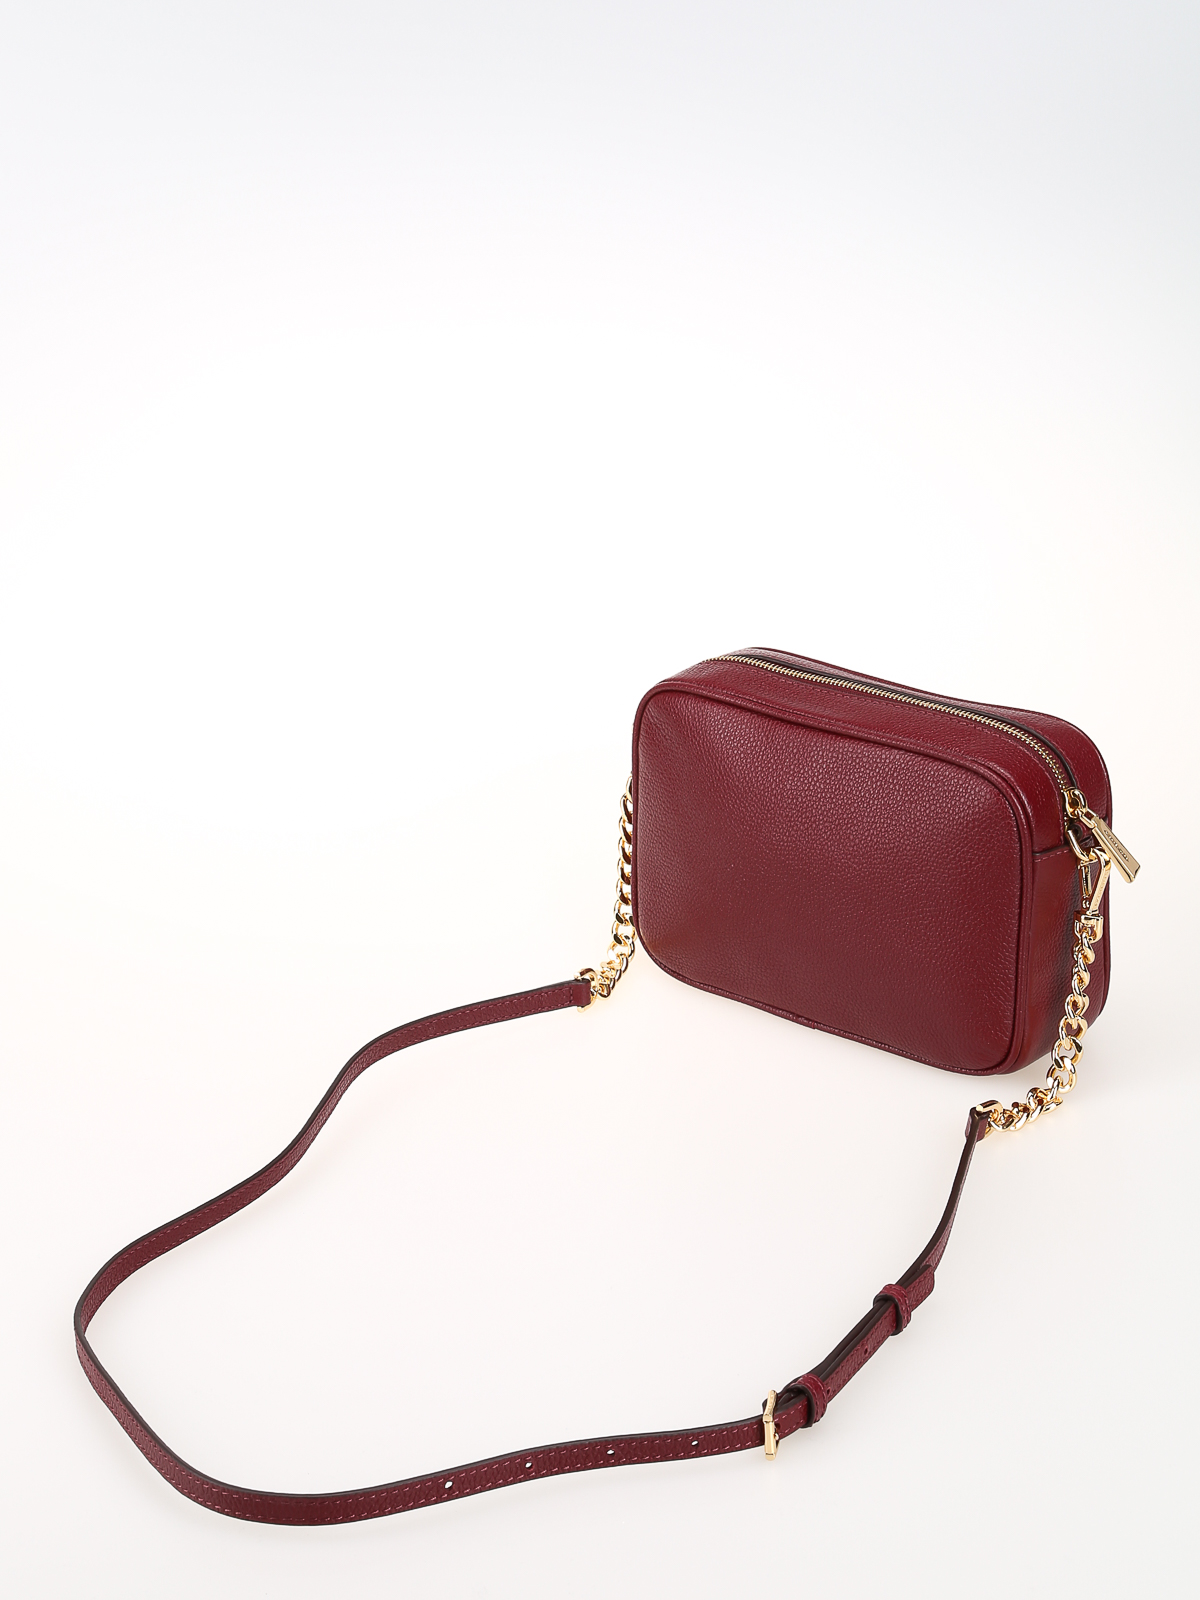 40616a39603b3d iKRIX MICHAEL KORS: cross body bags - Ginny medium oxblood cross body bag